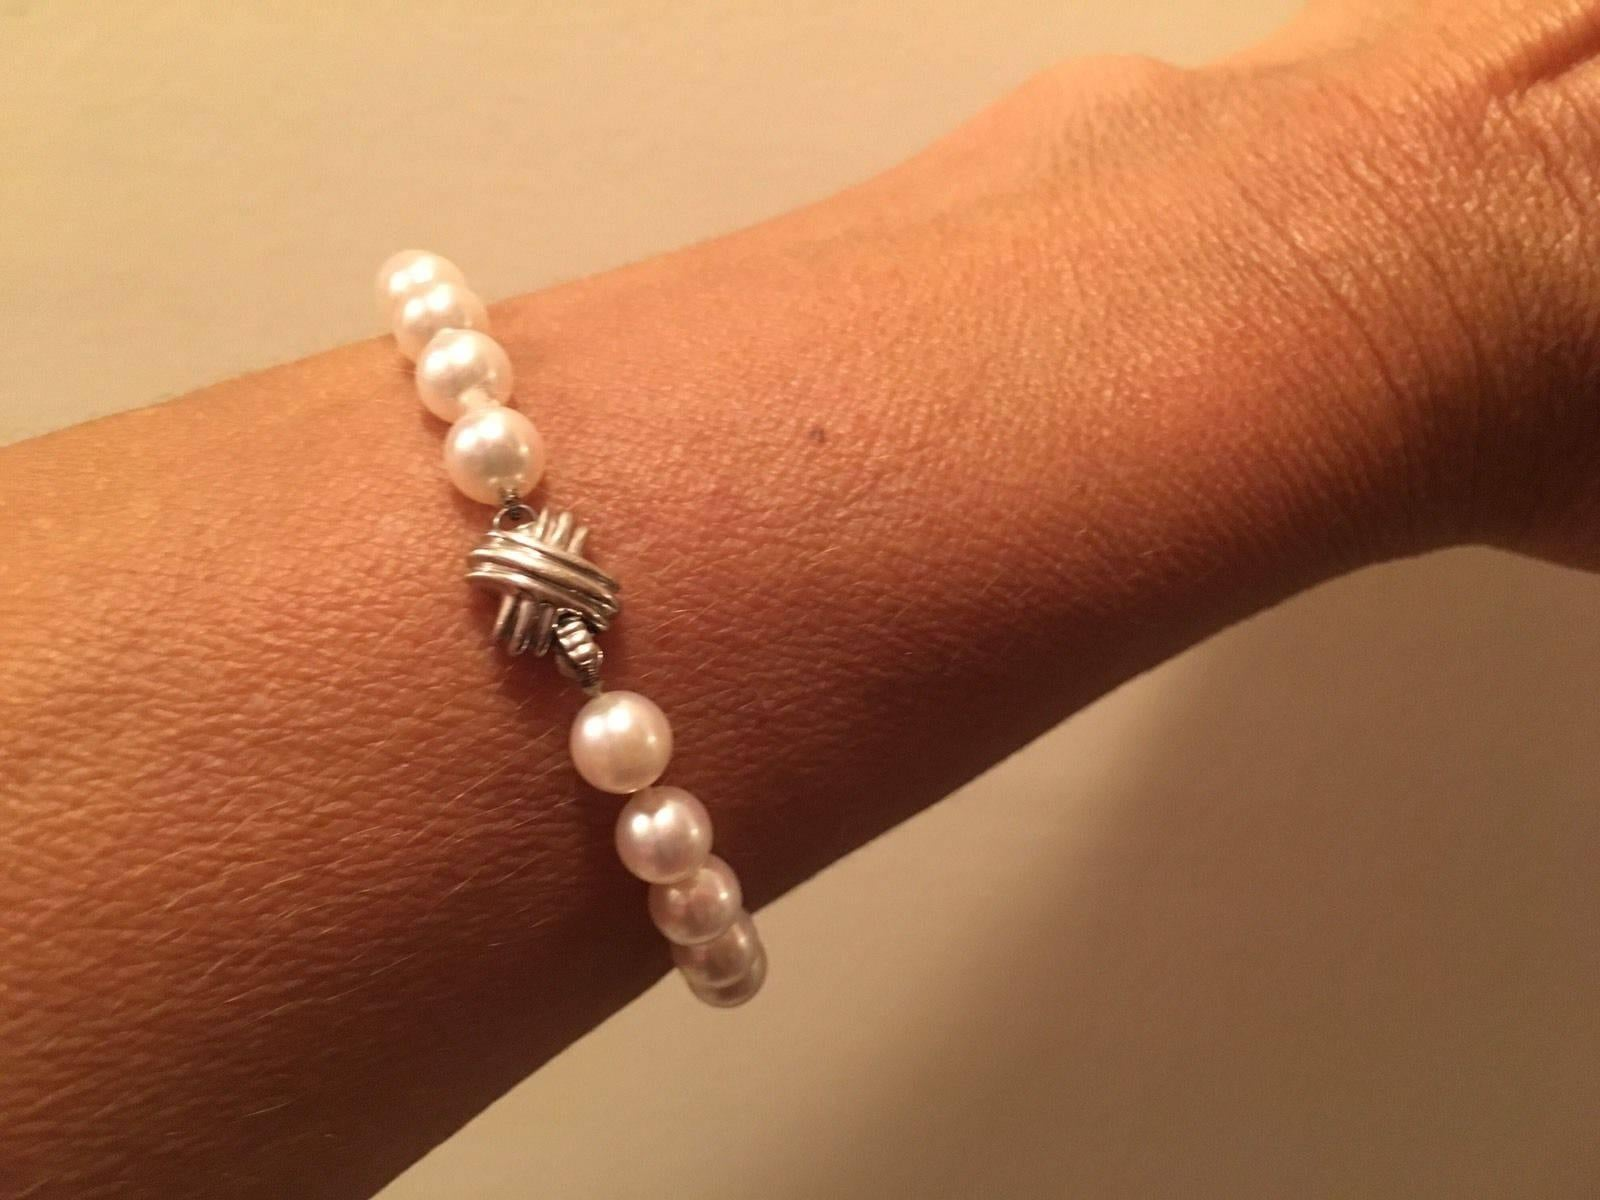 1aa754c99 Tiffany and Co. Stunning White Gold Signature X Akoya Cultured Pearl  Bracelet at 1stdibs